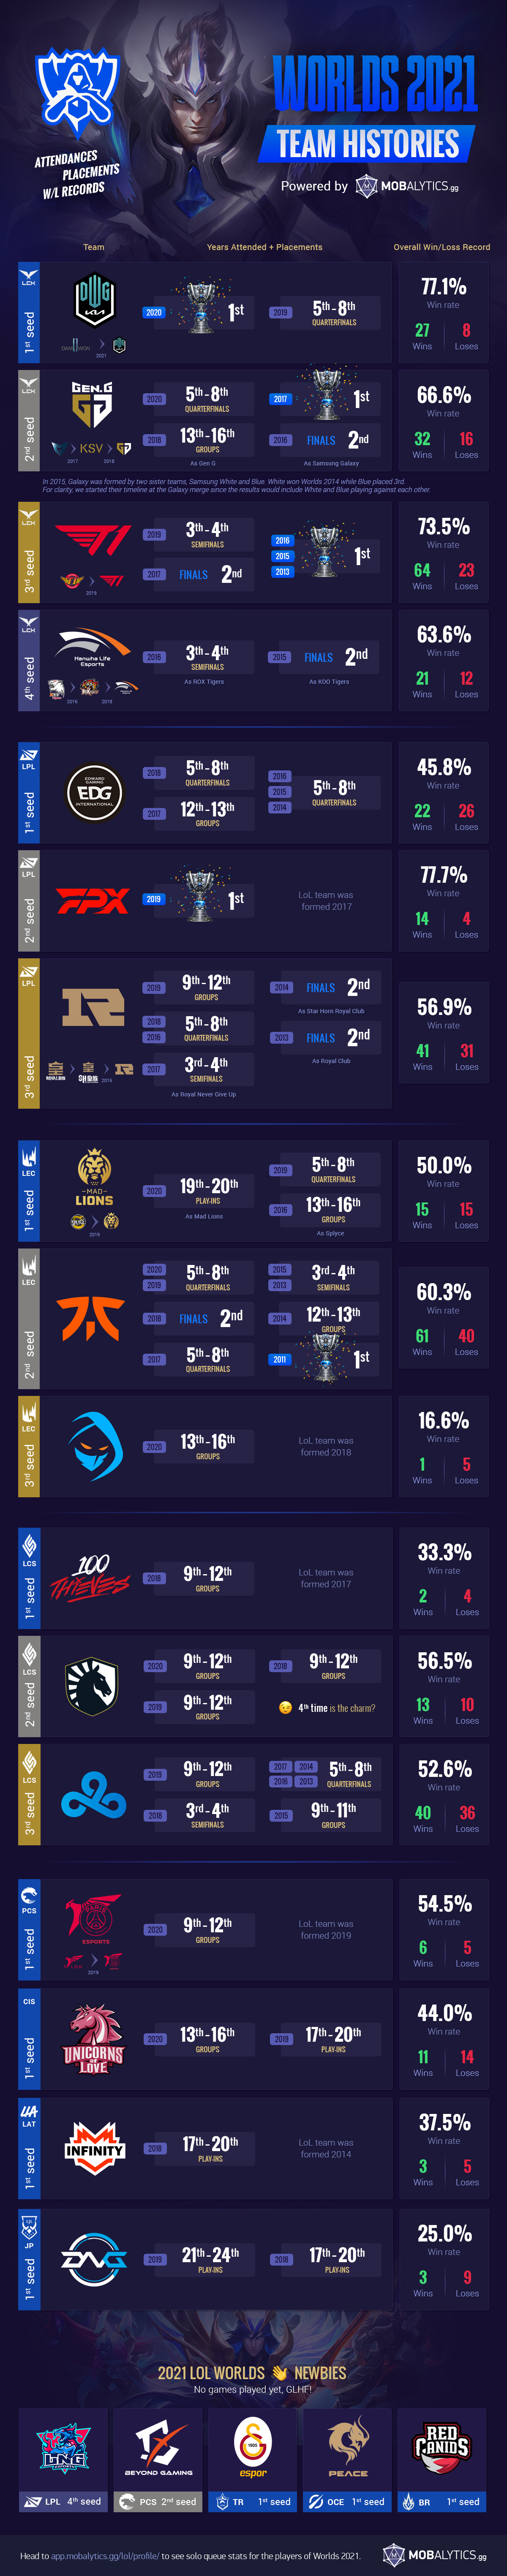 LoL Worlds 2021 Team Histories: Number of Attendances, Rank Placements, and Overall W/L Records